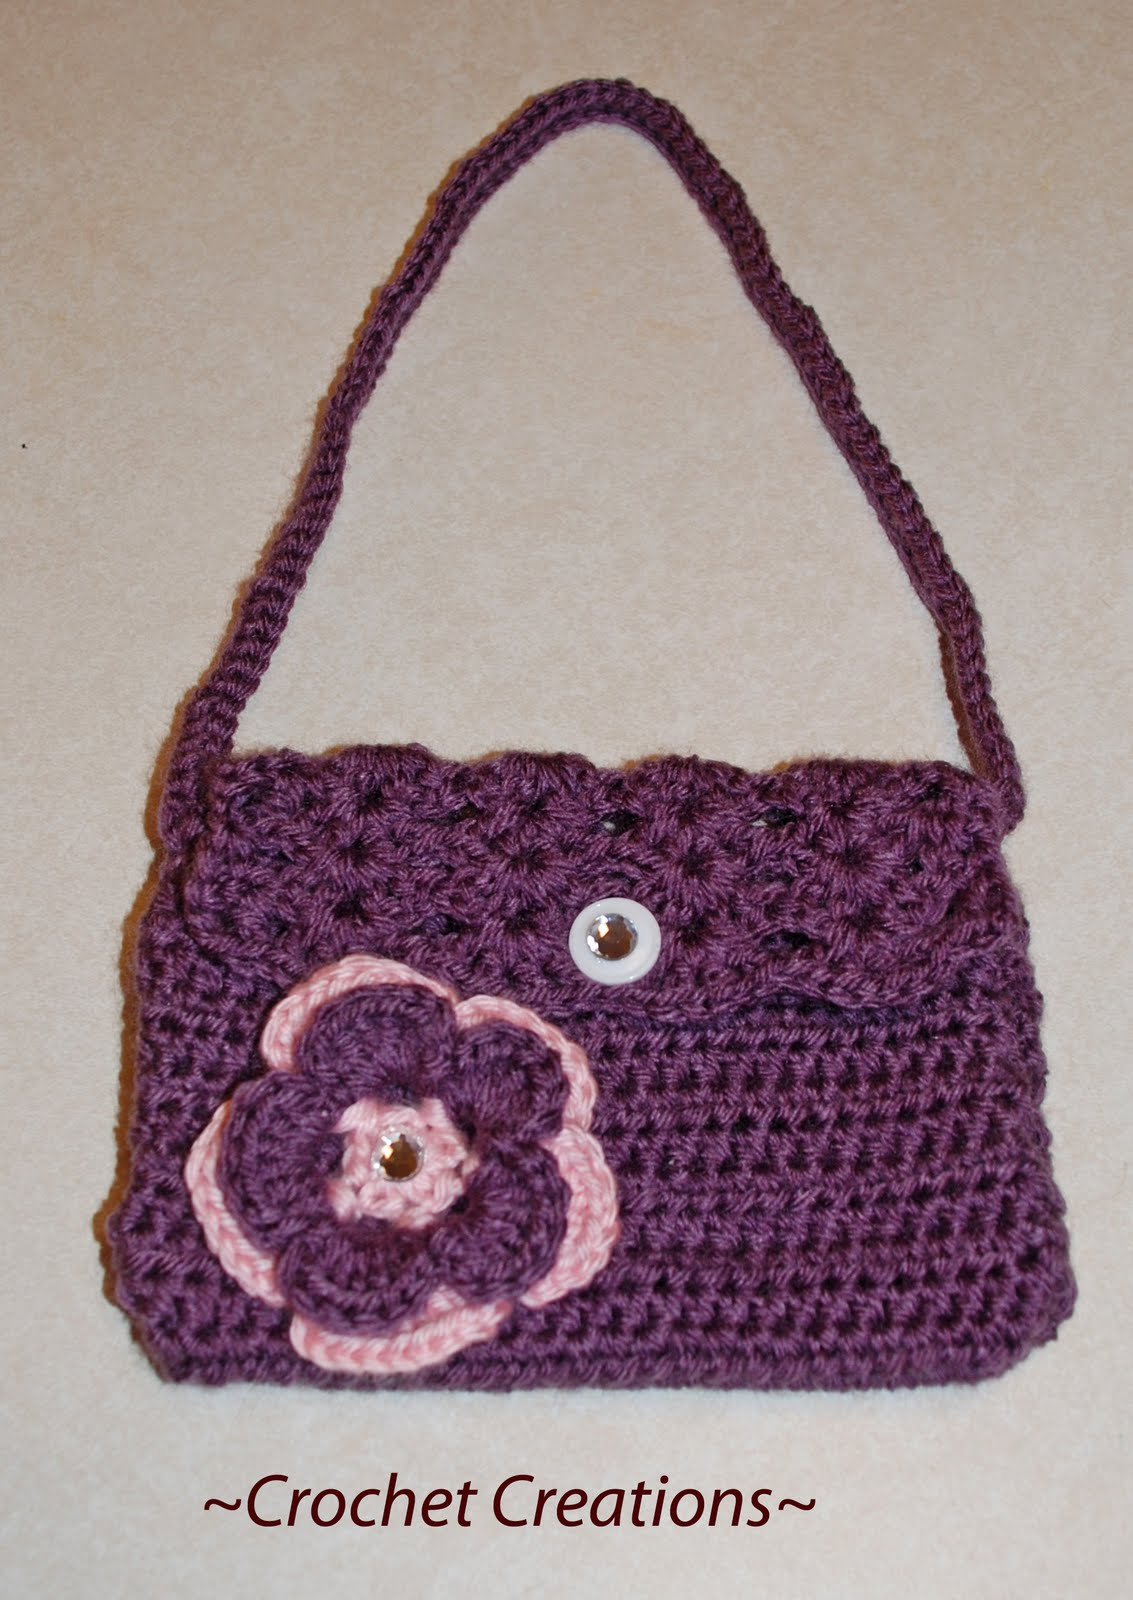 Crochet Pattern Central - Free Purse Crochet Pattern Link Directory